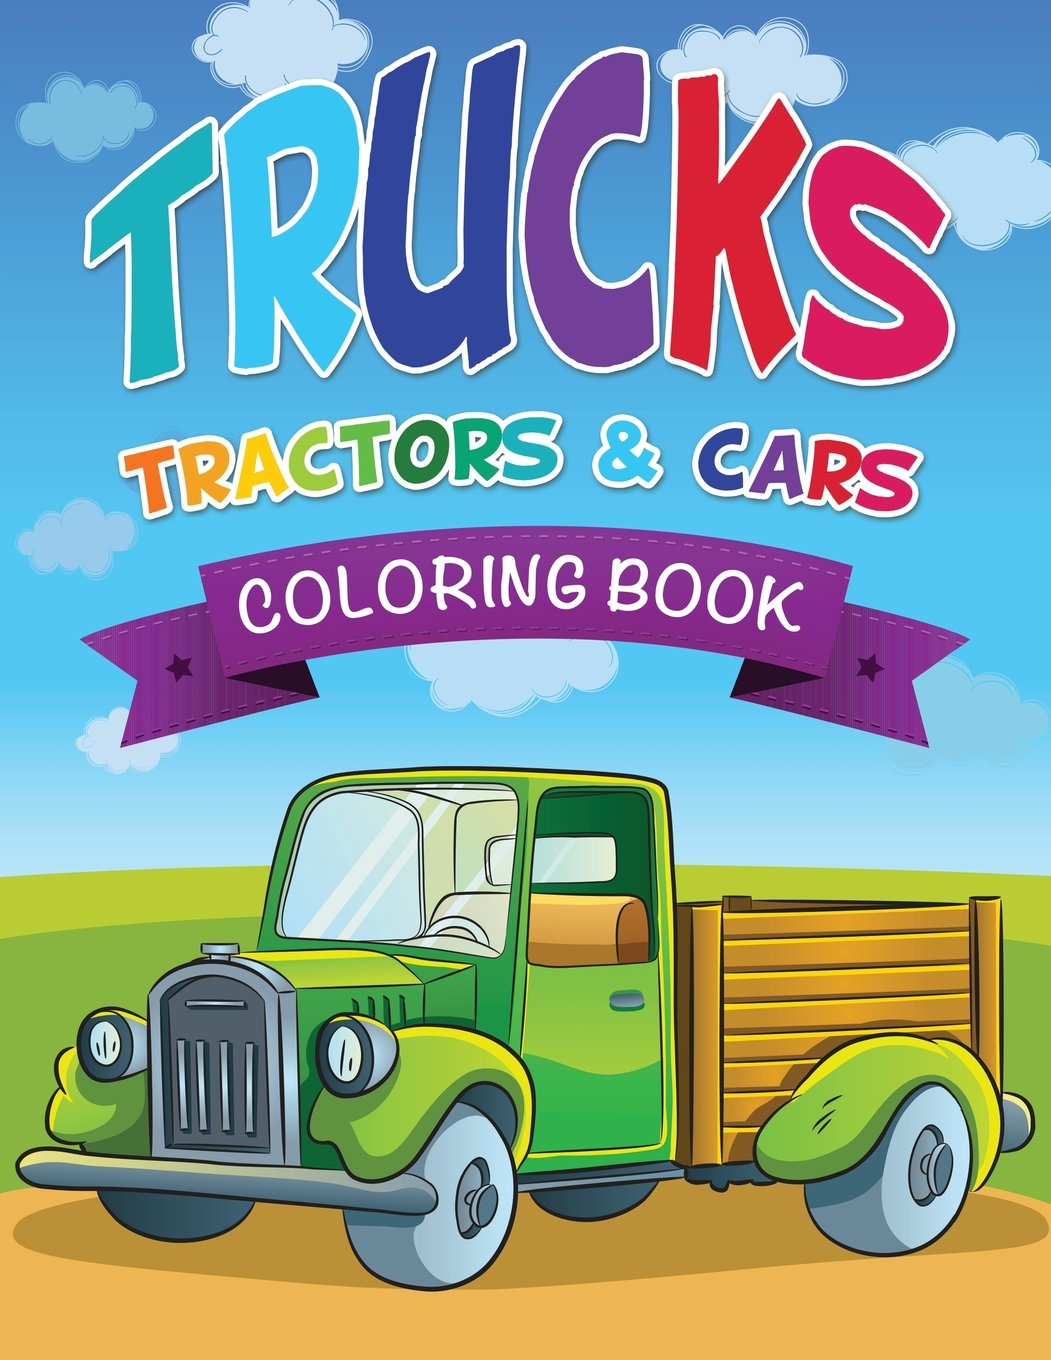 Coloring pictures of cars truck tractors - Trucks Tractors Cars Coloring Book Speedy Publishing Llc 9781632873972 Amazon Com Books